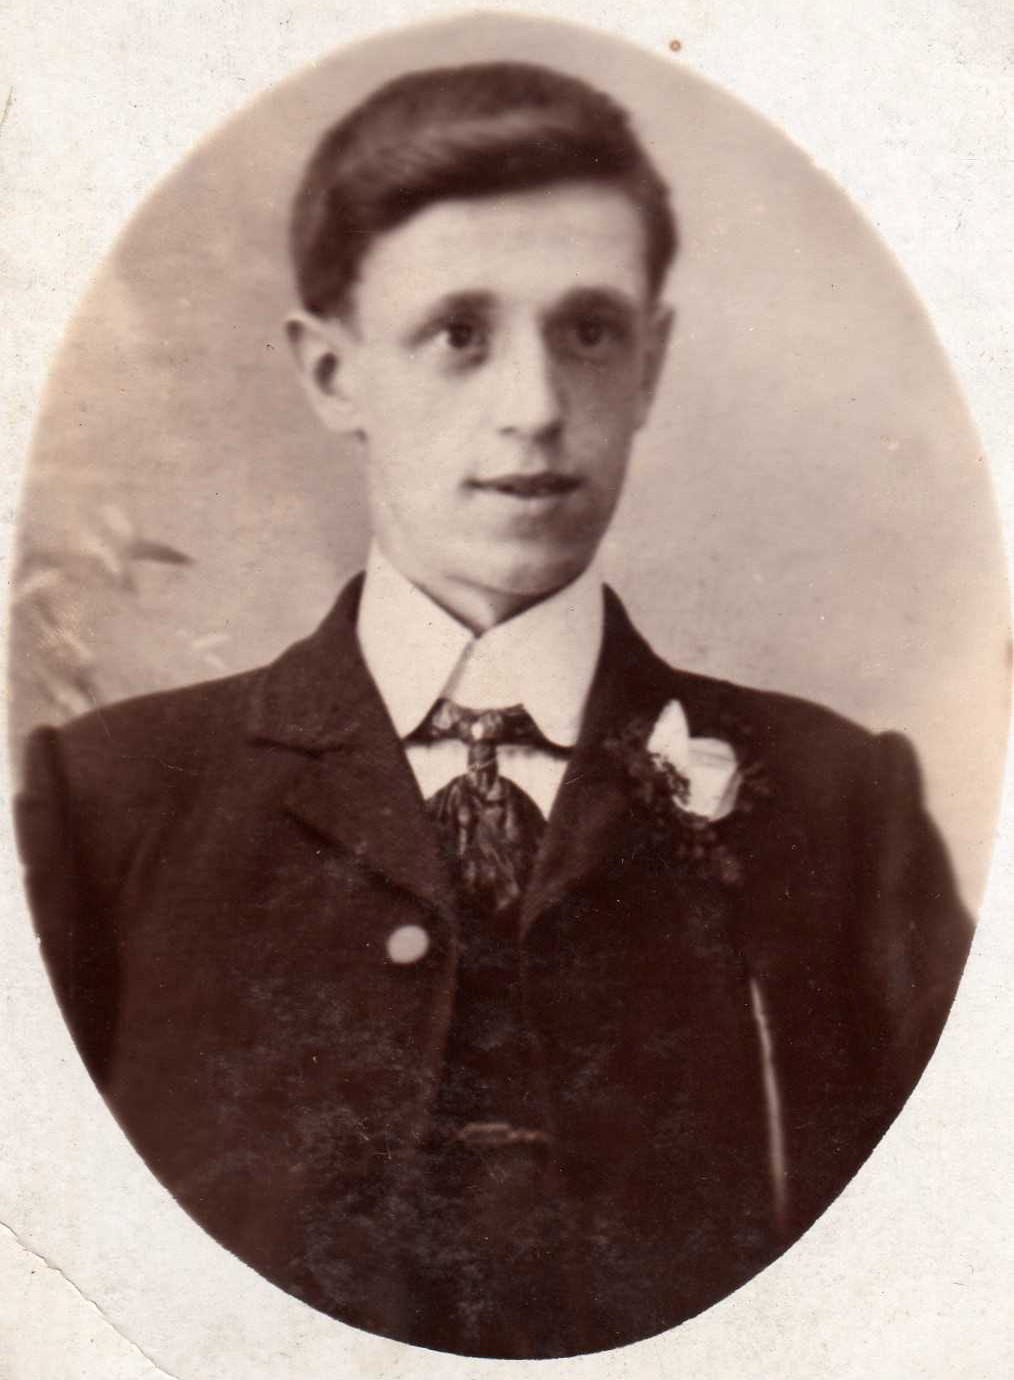 David Middleton, aged about 20